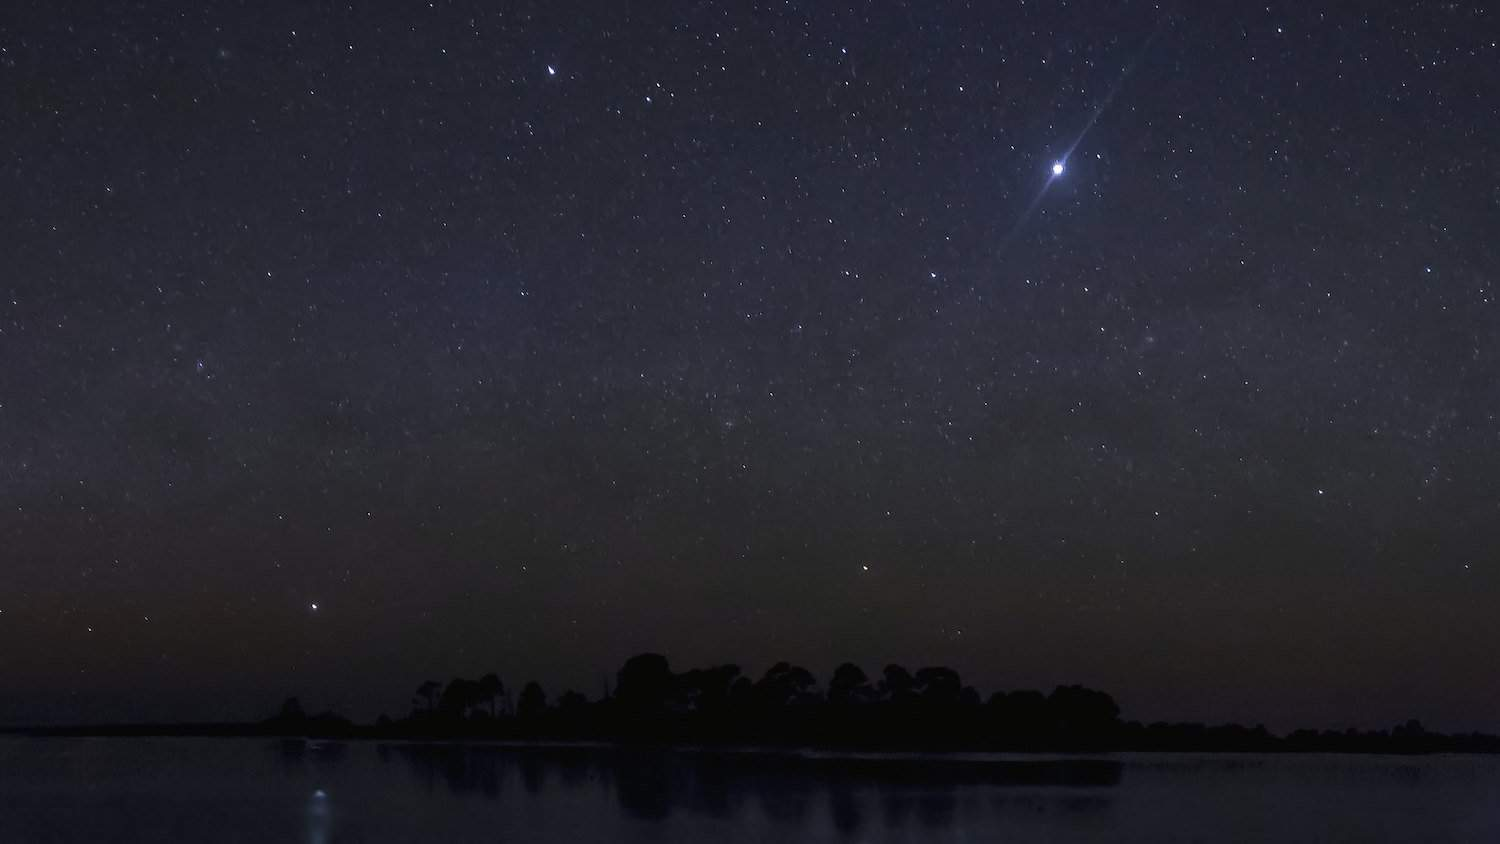 Stargazing in Florida - Cedar Key - Ryan McKee via Flickr